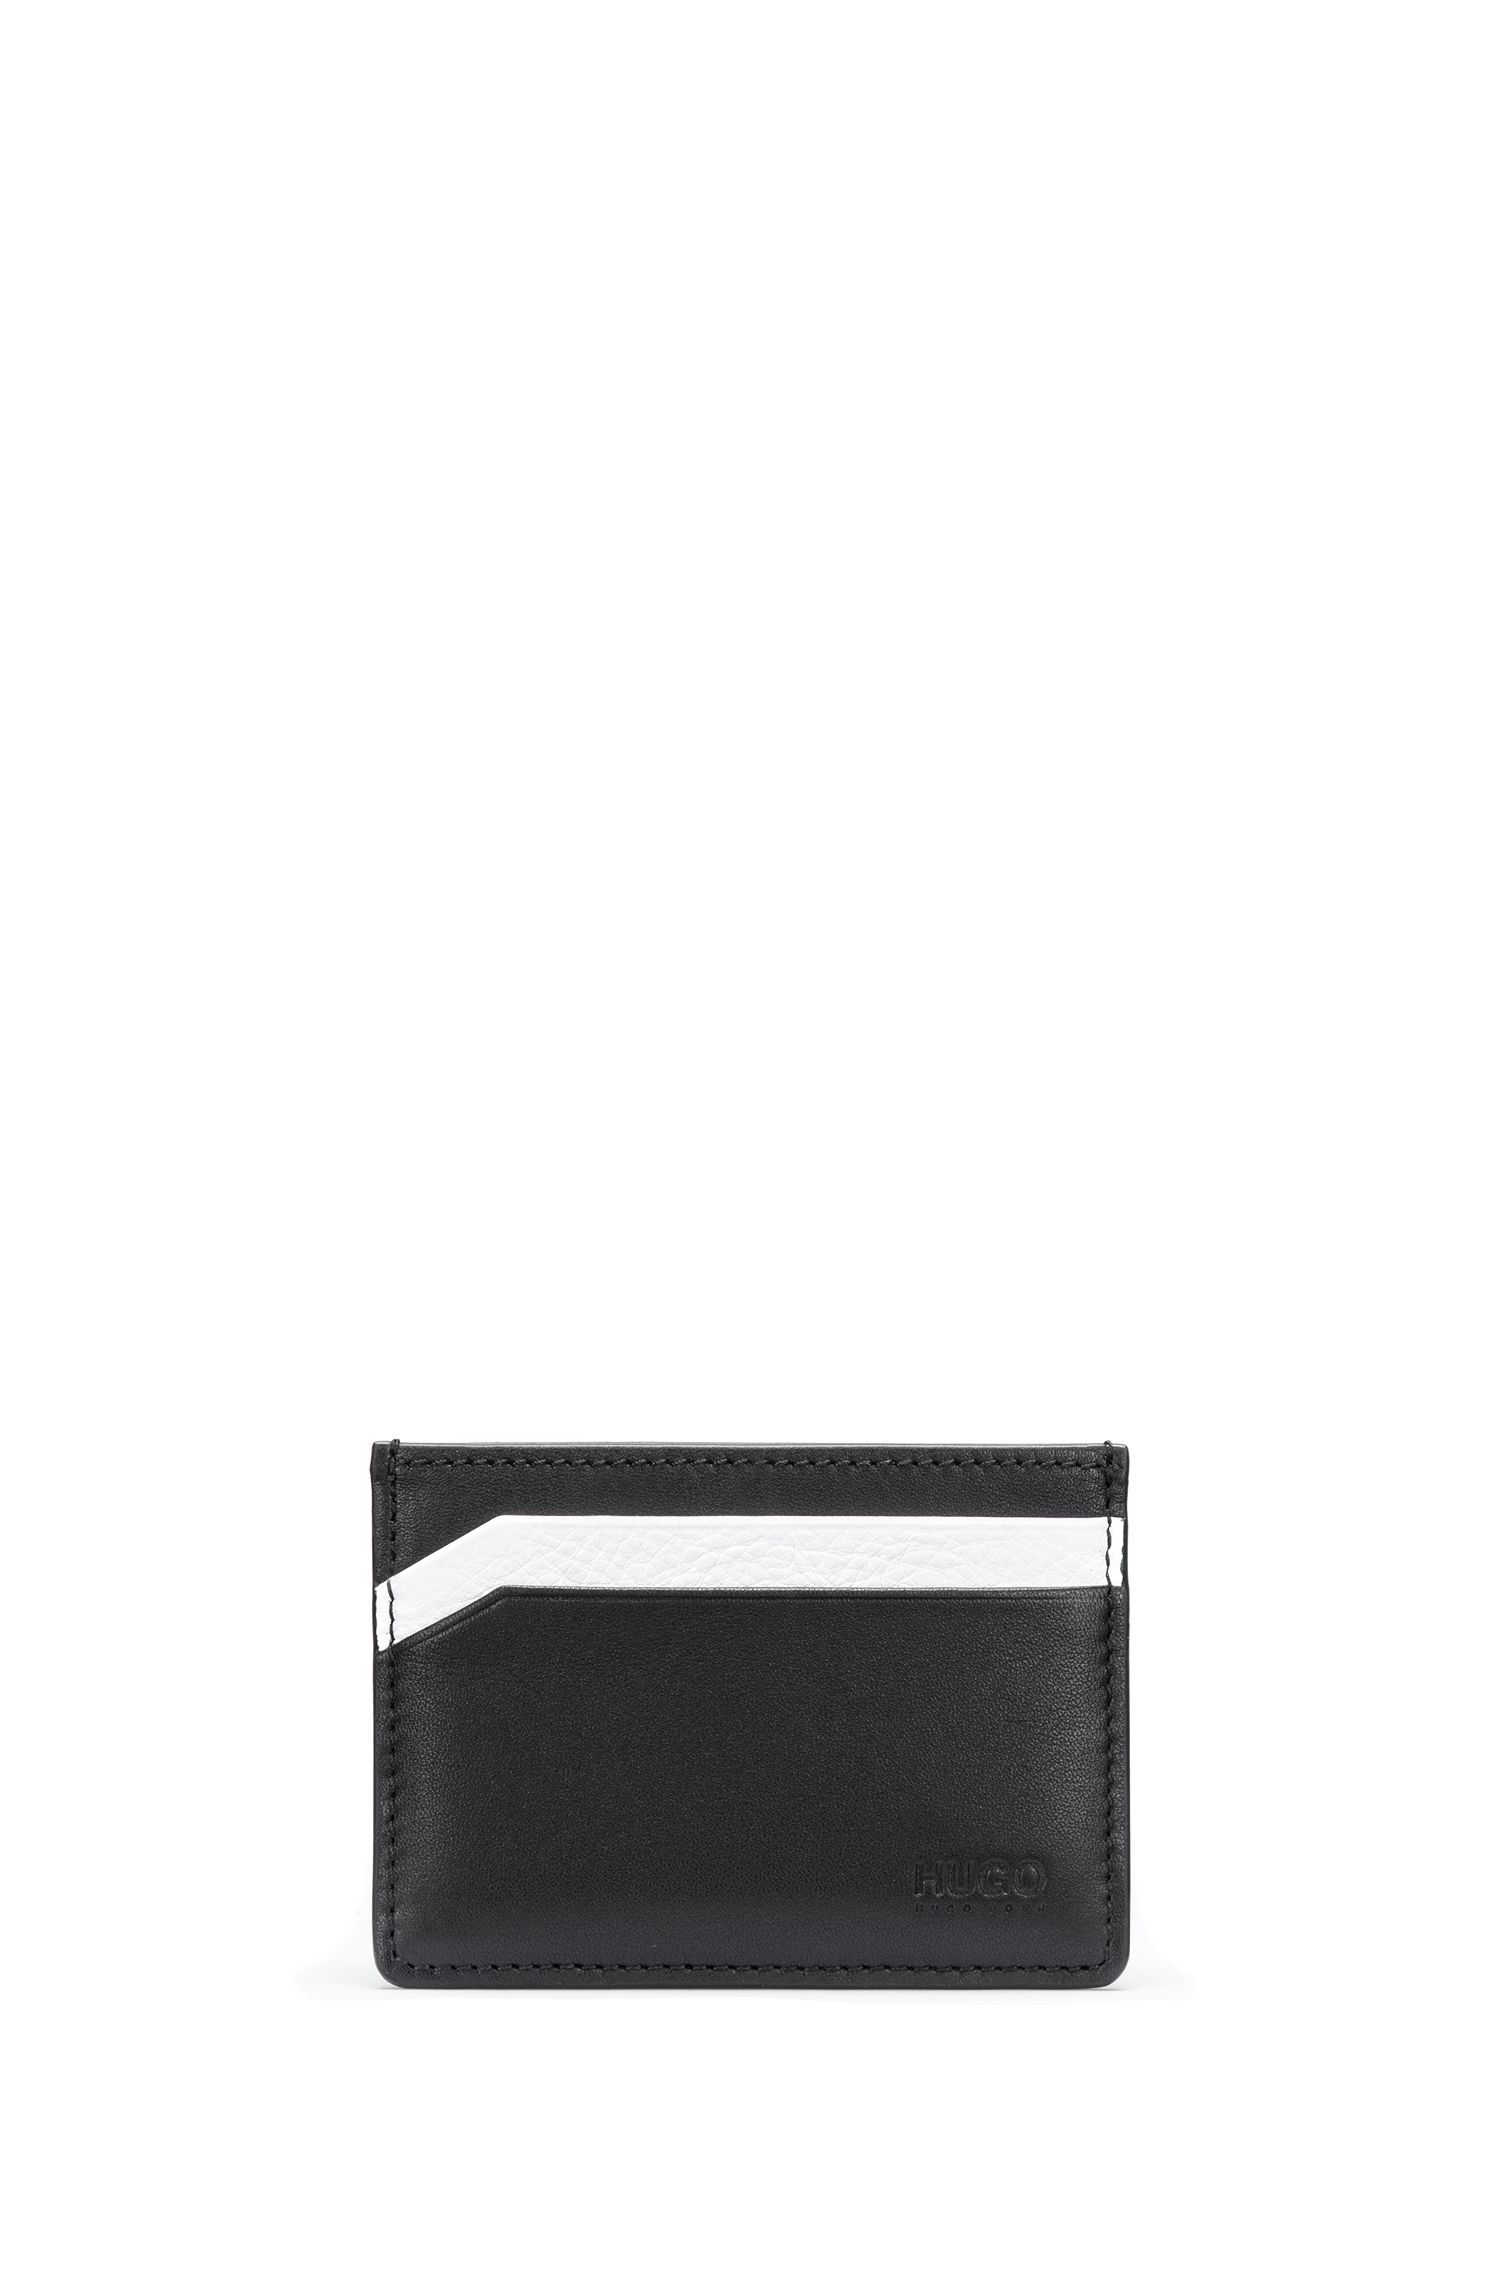 Four-slot card holder in smooth leather